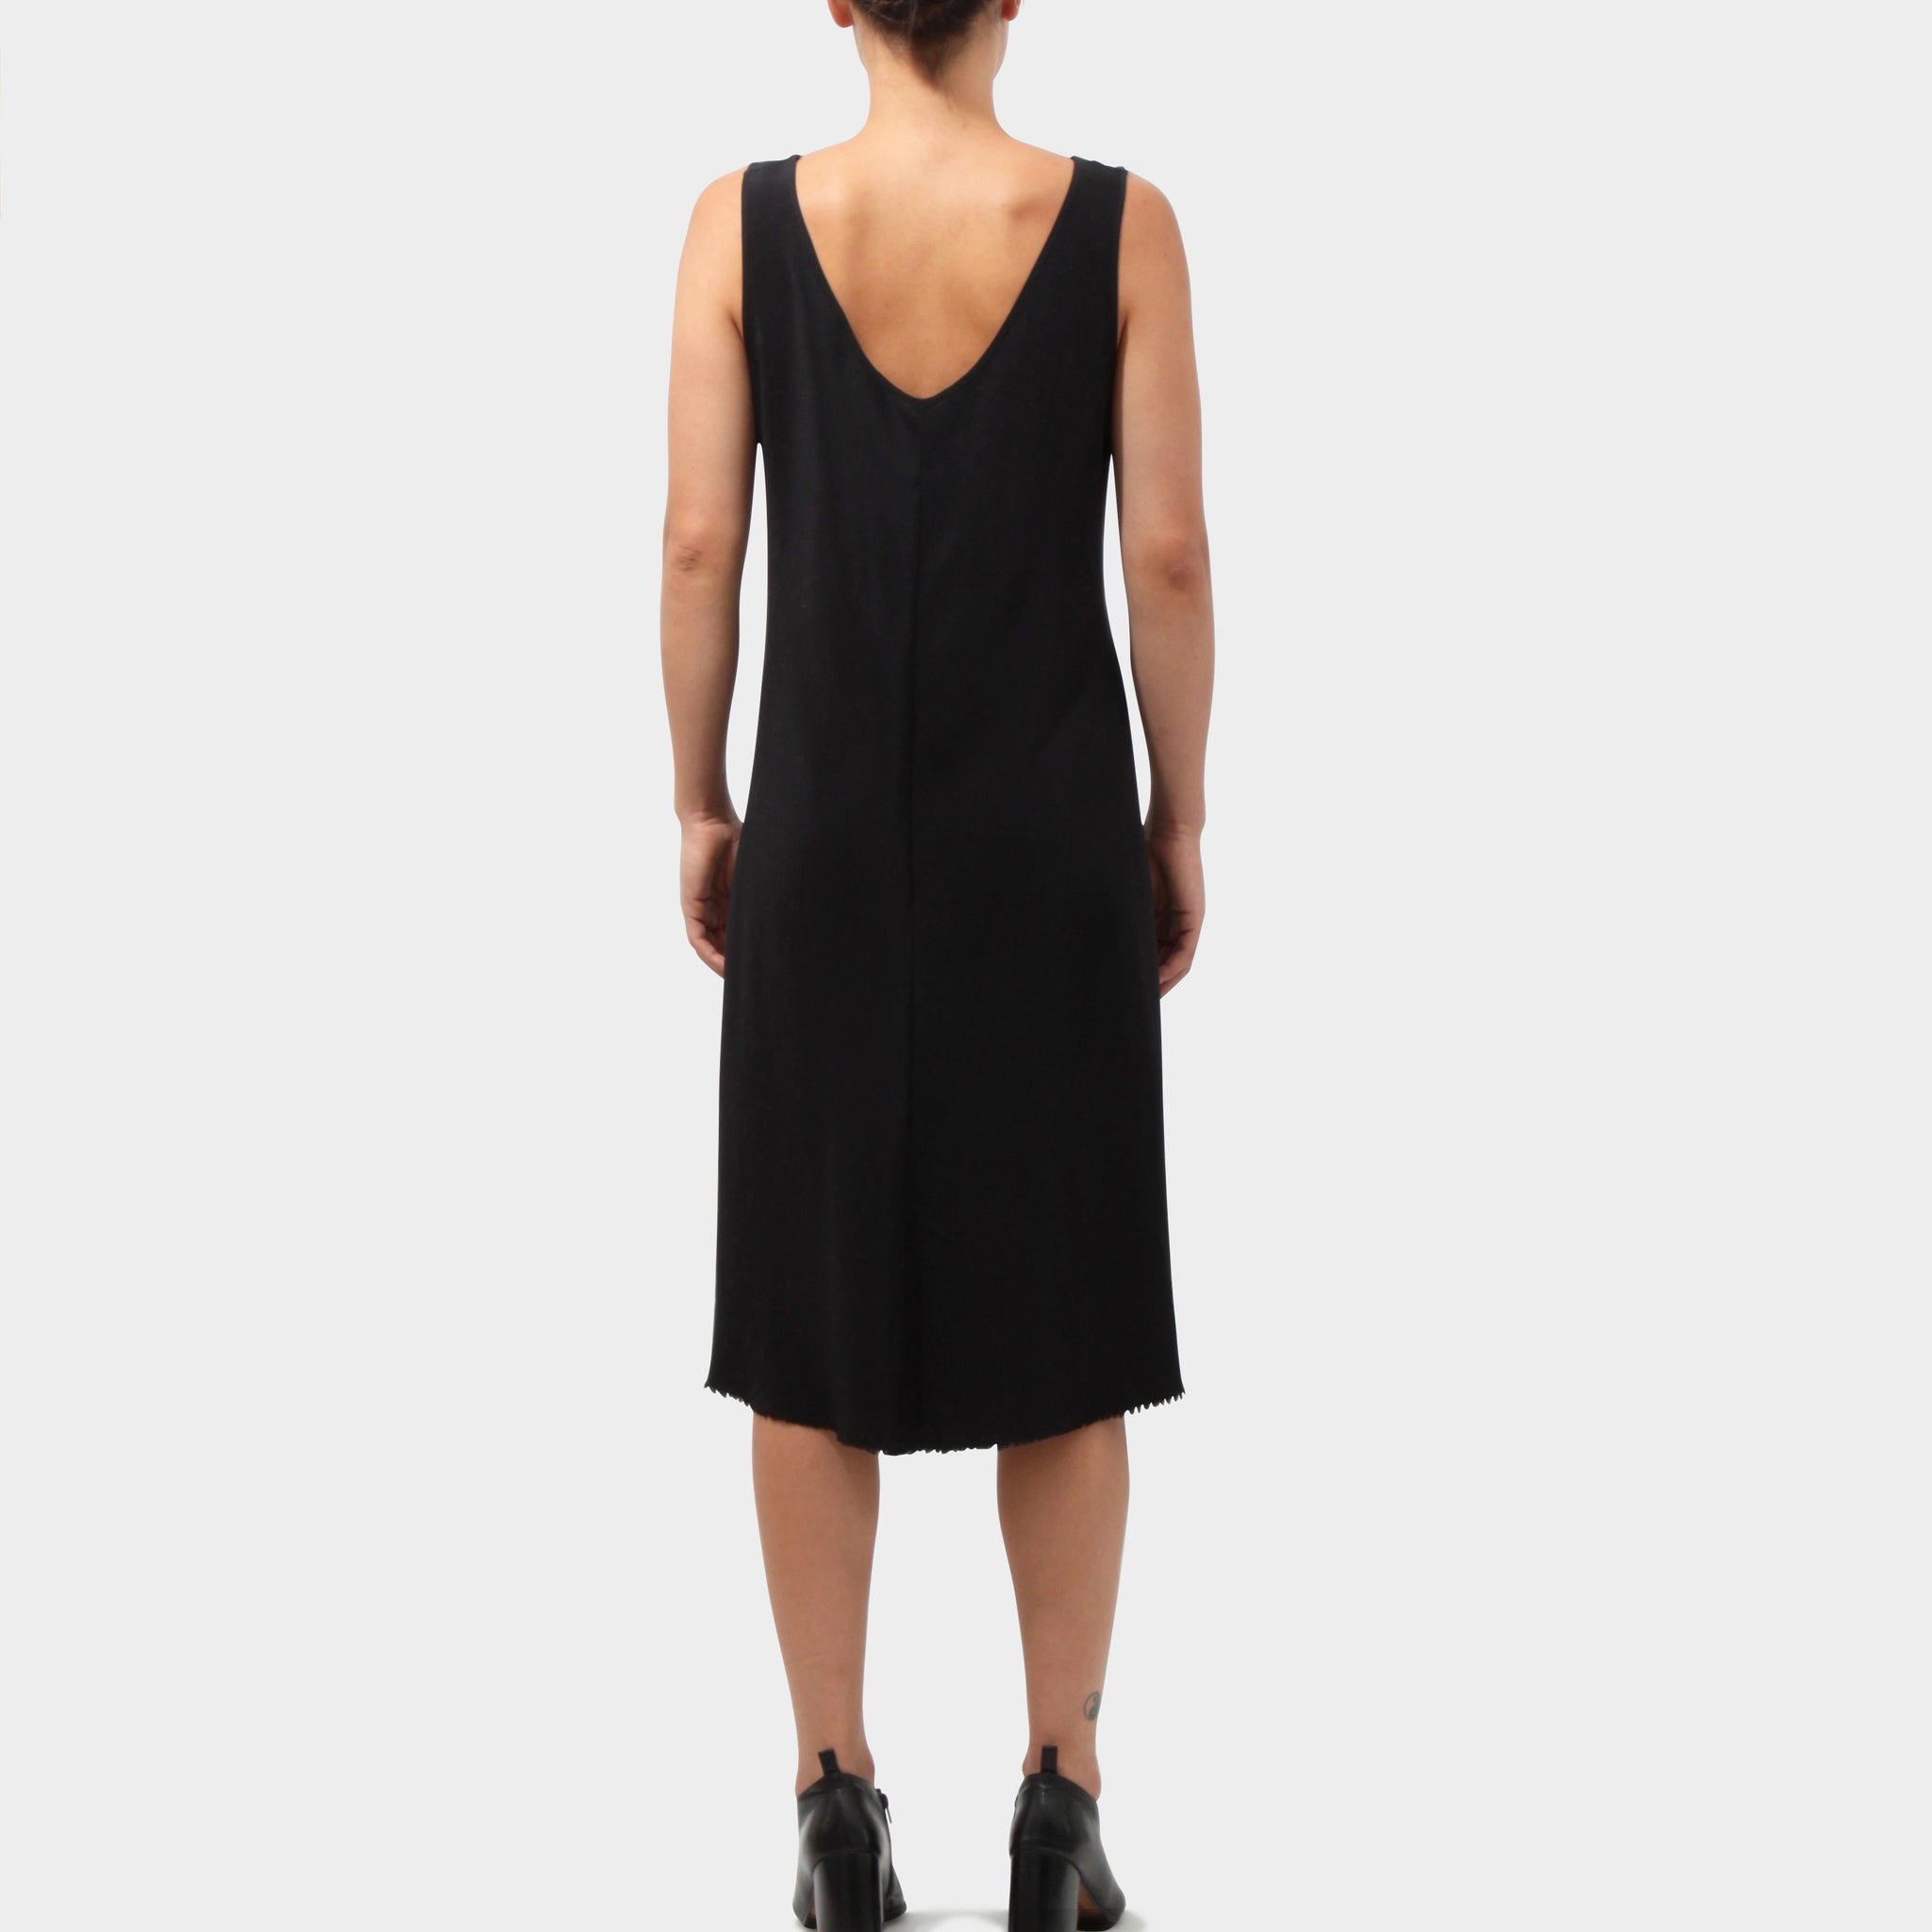 P.R. Patterson Silk Pin tuck Dress